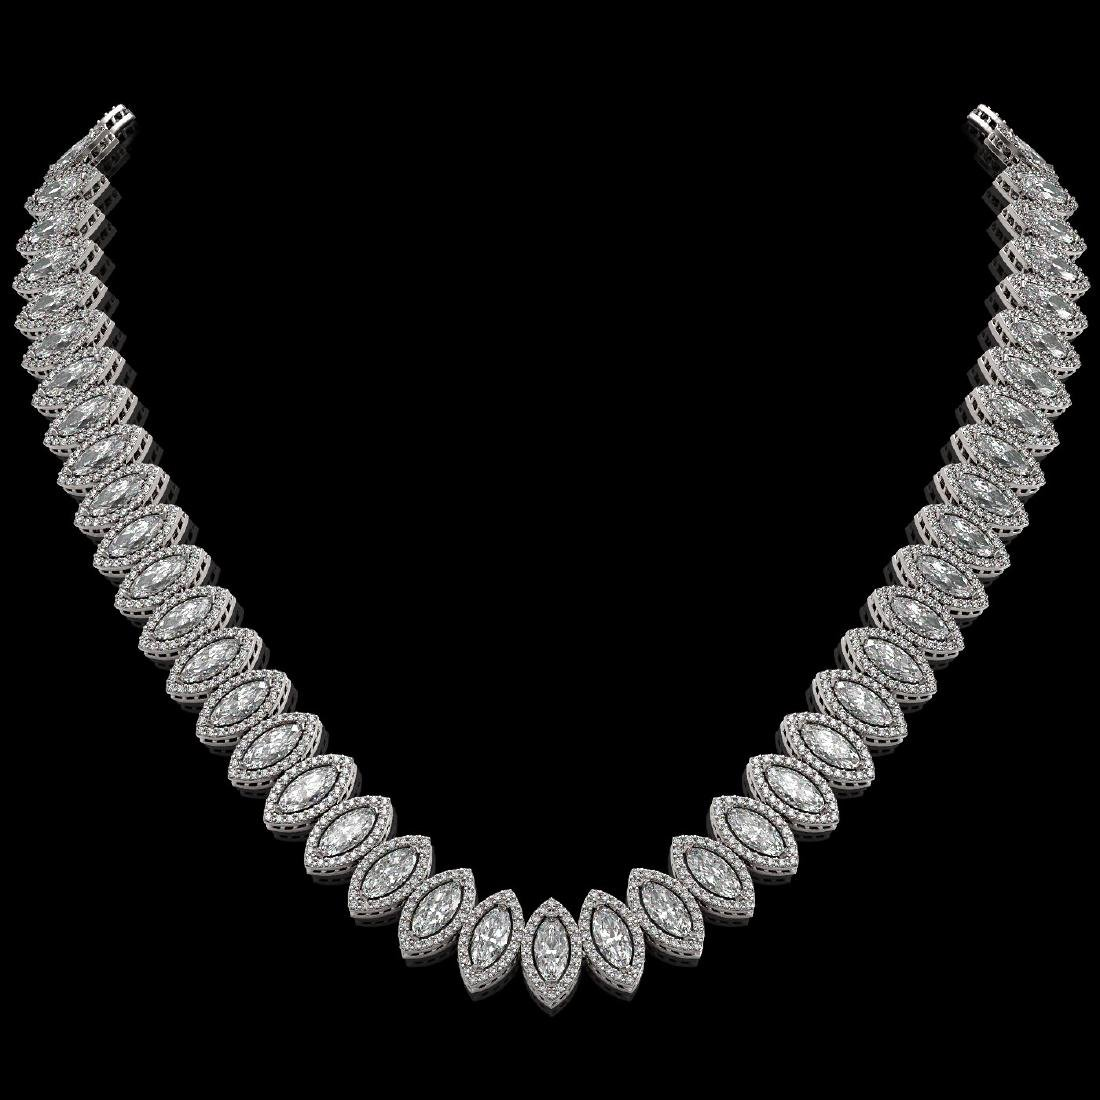 39.68 CTW Marquise Diamond Designer Necklace 18K White